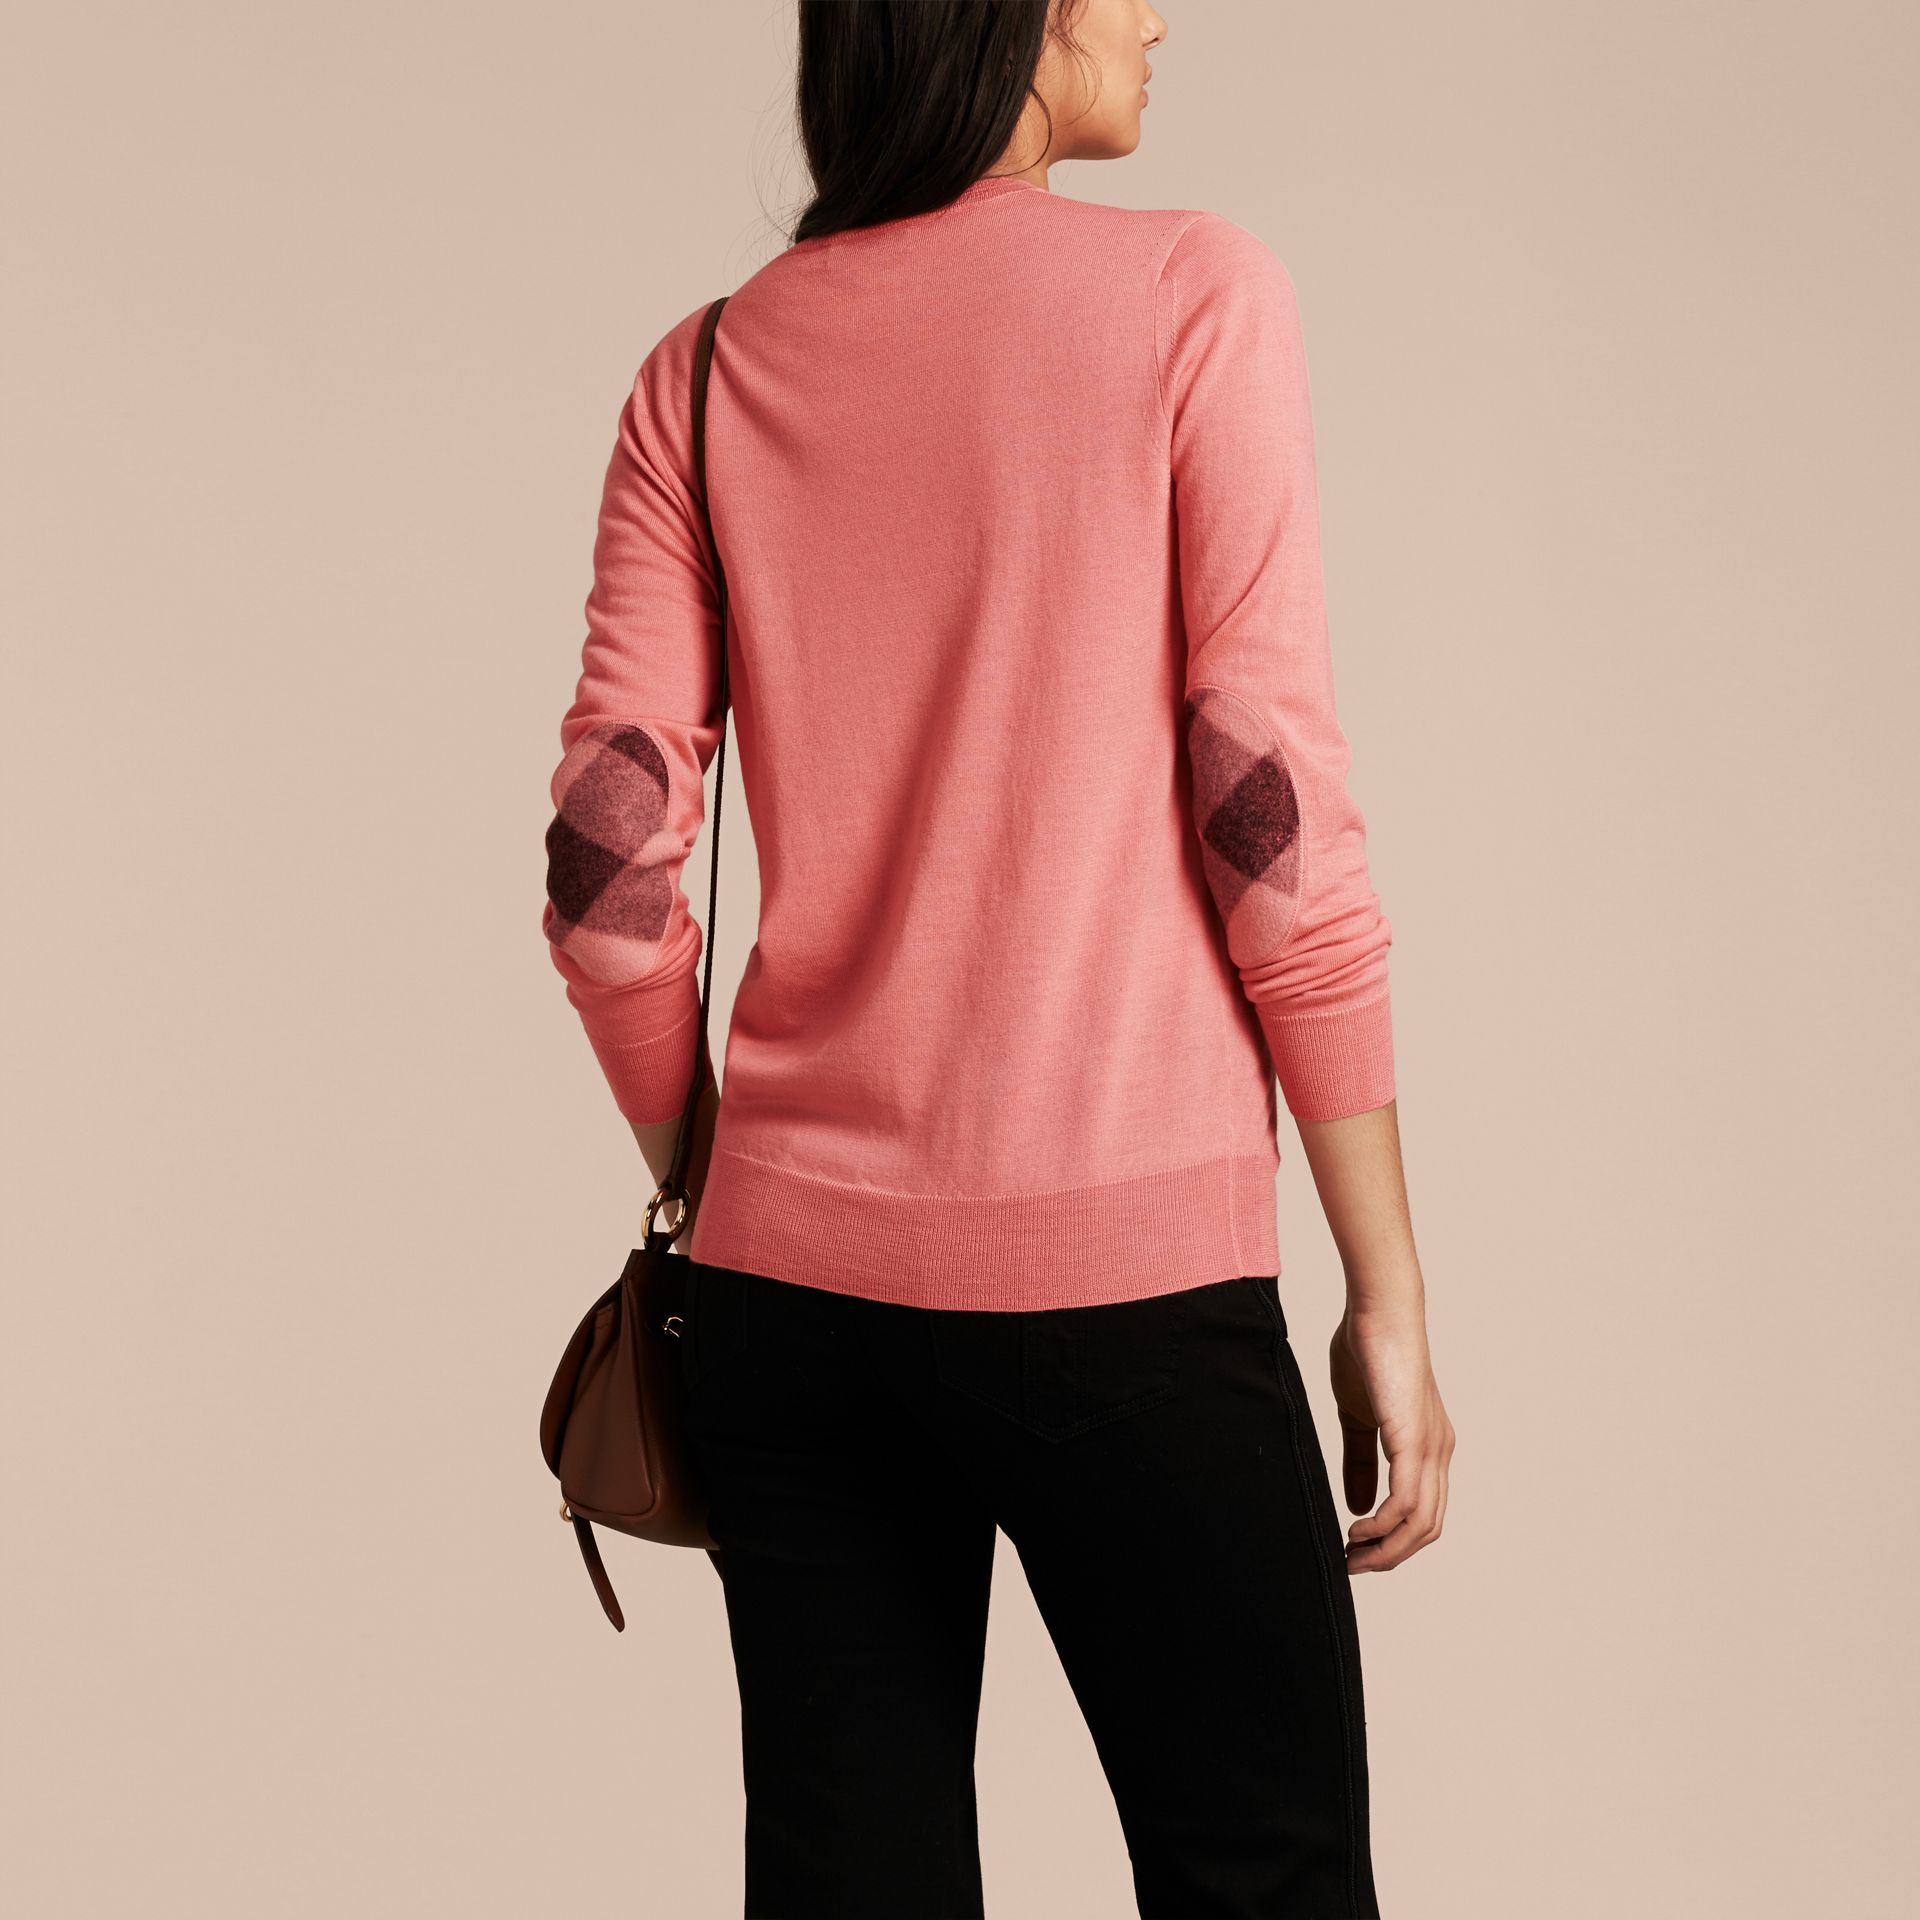 Pale rose pink Check Detail Merino Crew Neck Sweater Pale Rose Pink - gallery image 3